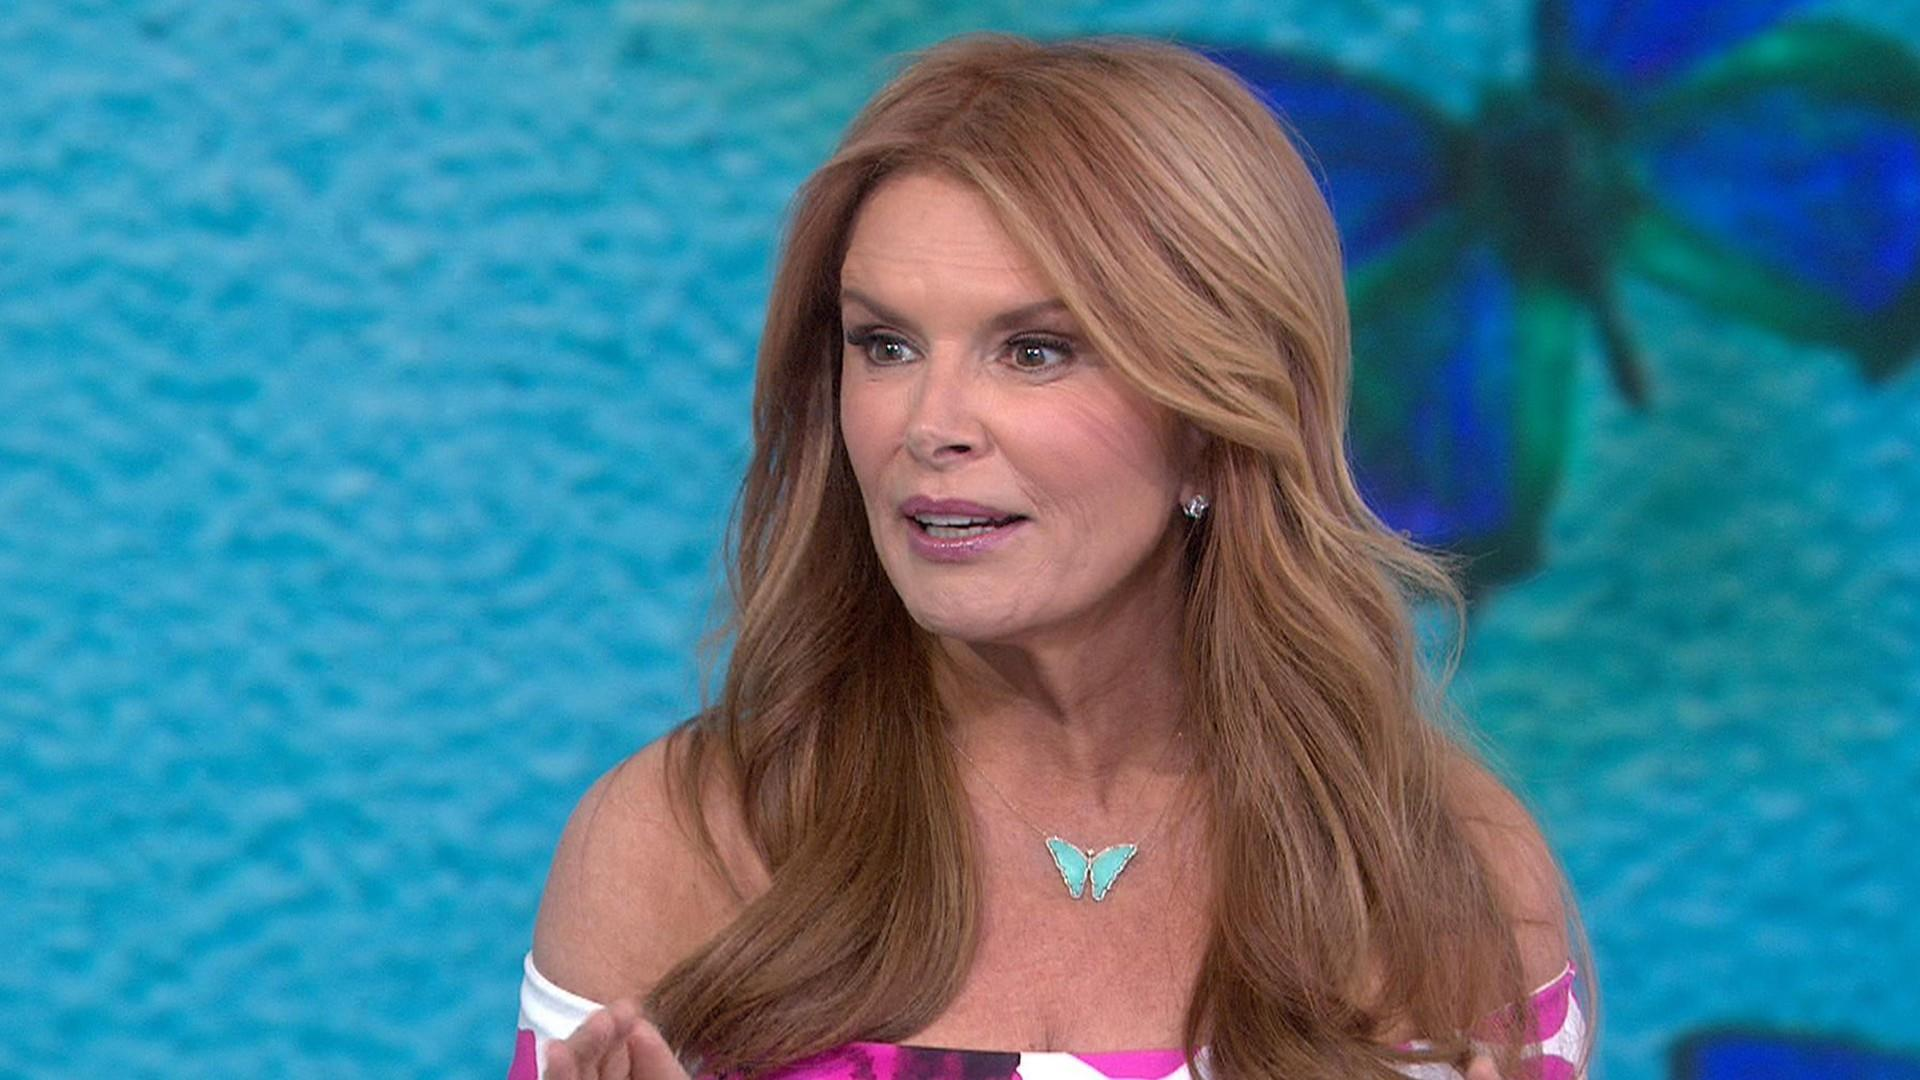 Roma Downey Talks About Box Of Butterflies Her Inspiring New Book